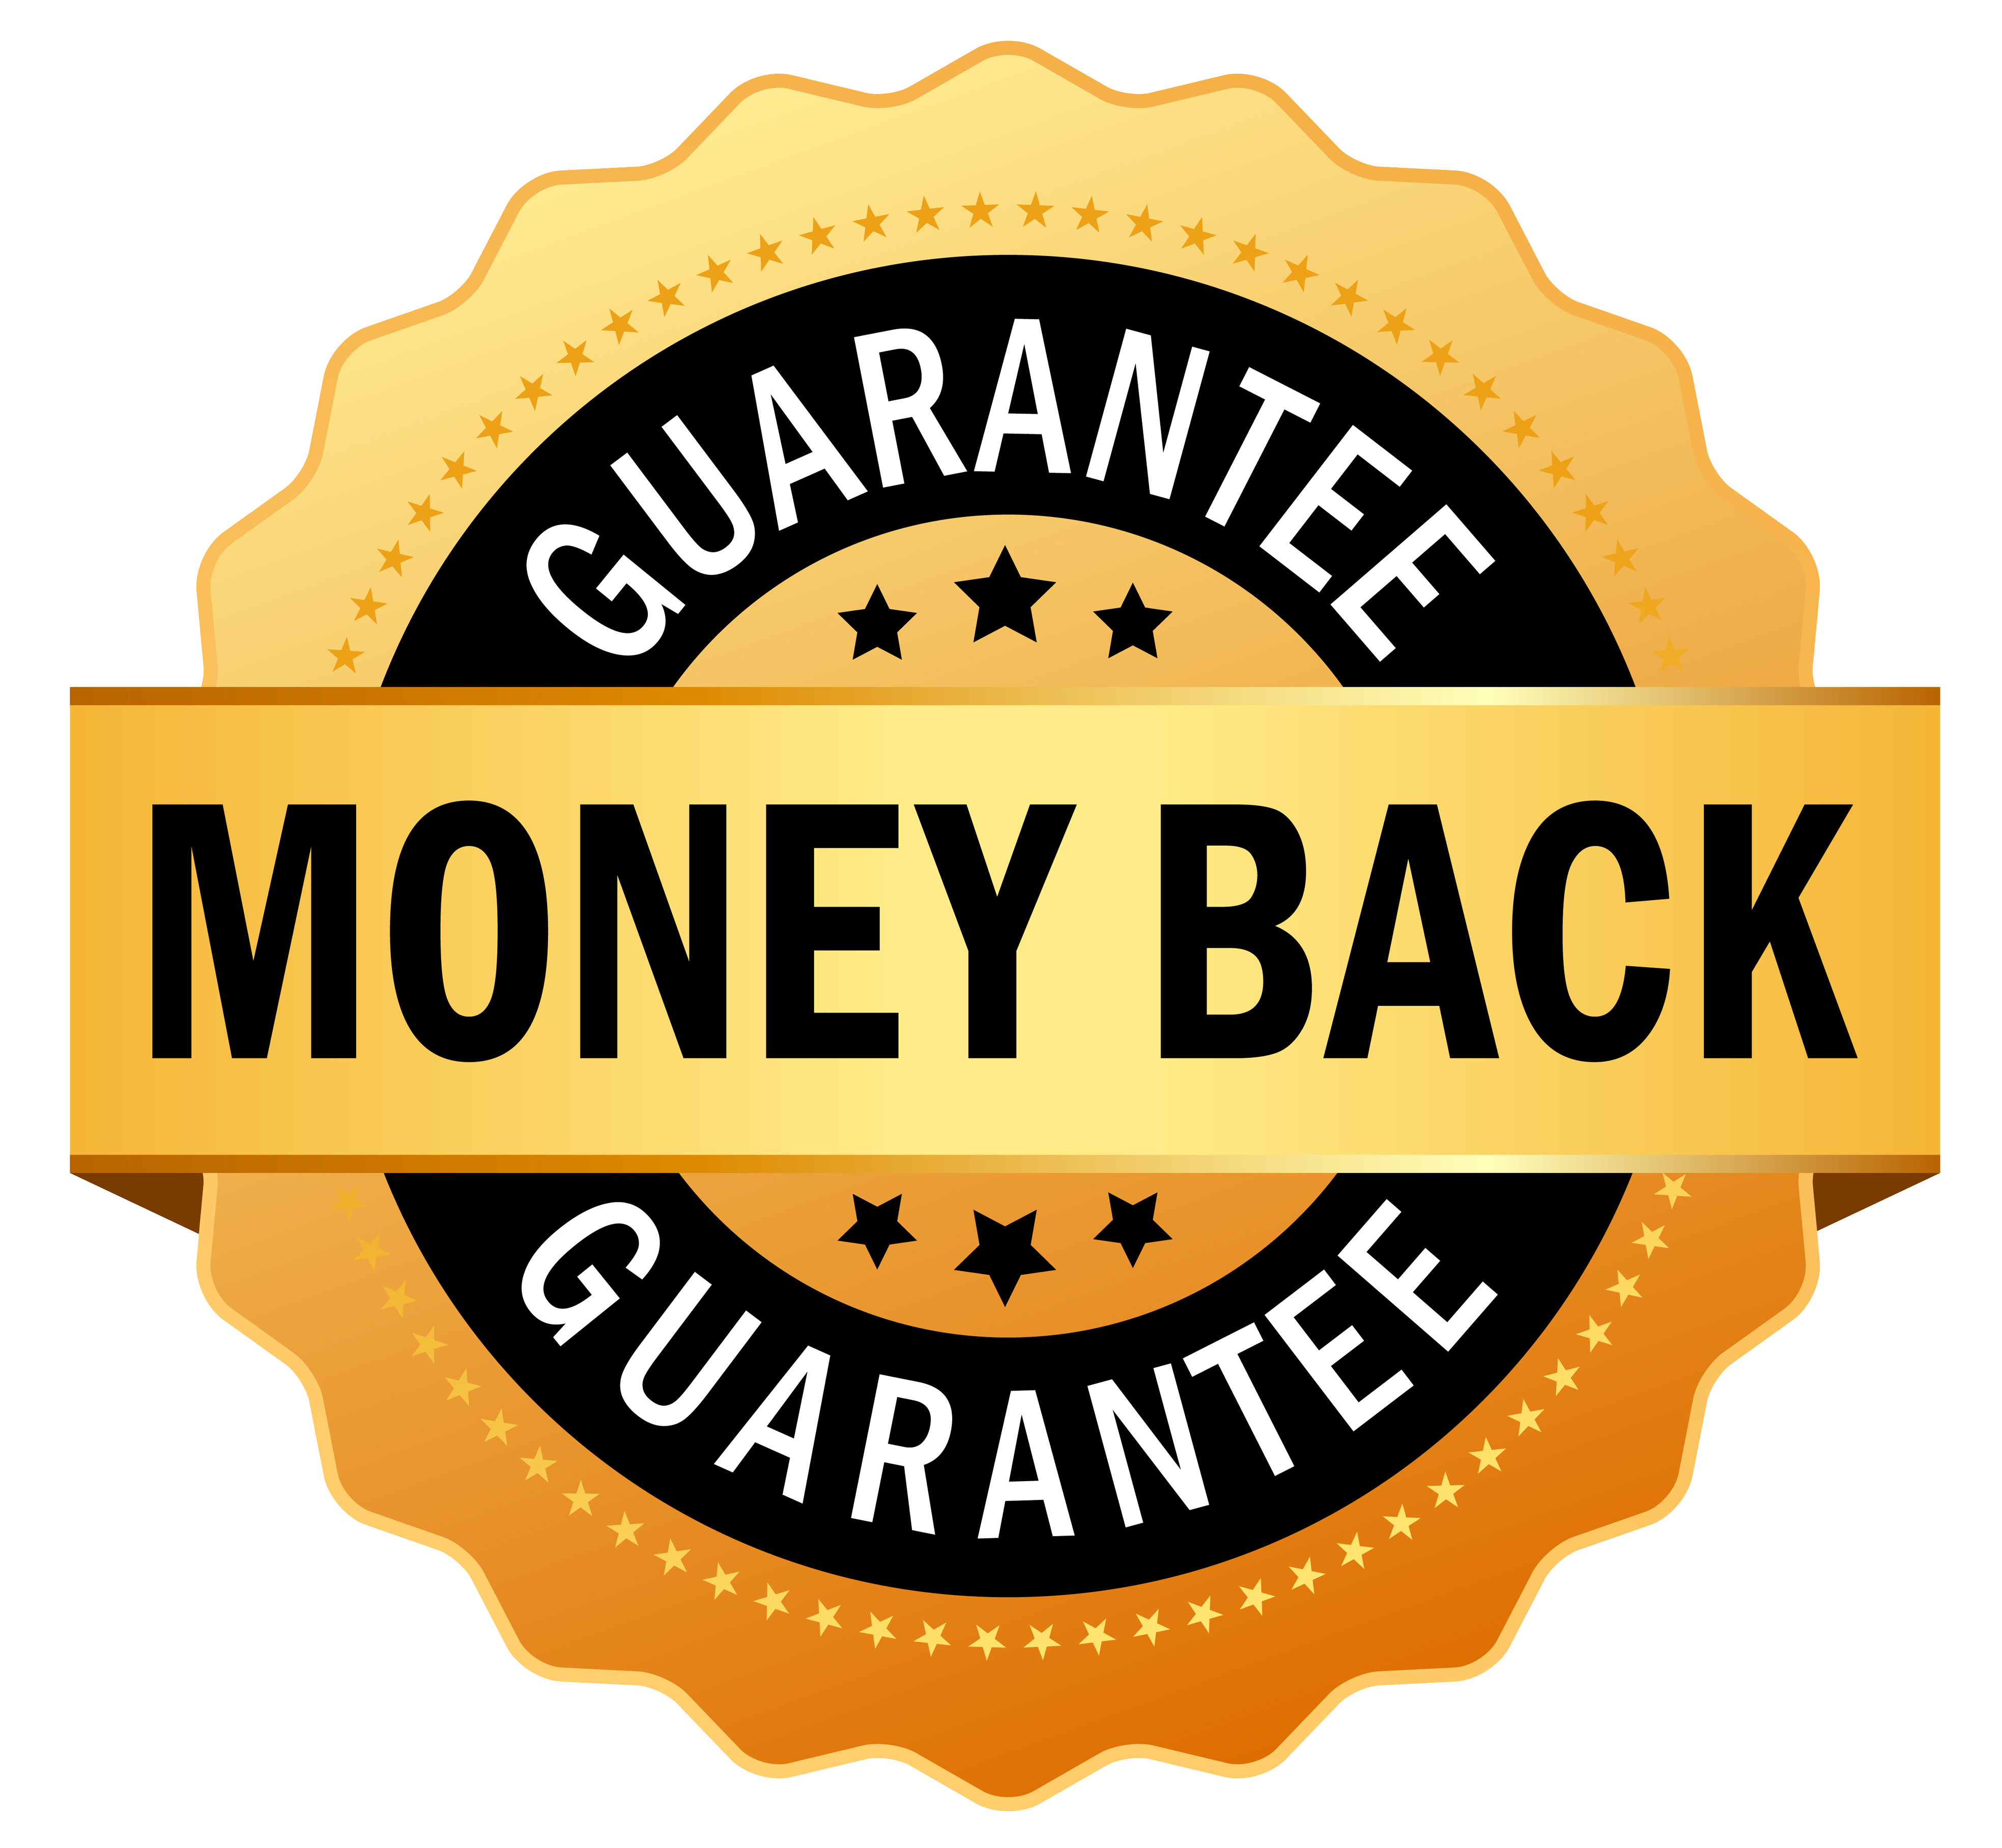 best pt in malmö with money back guarantee